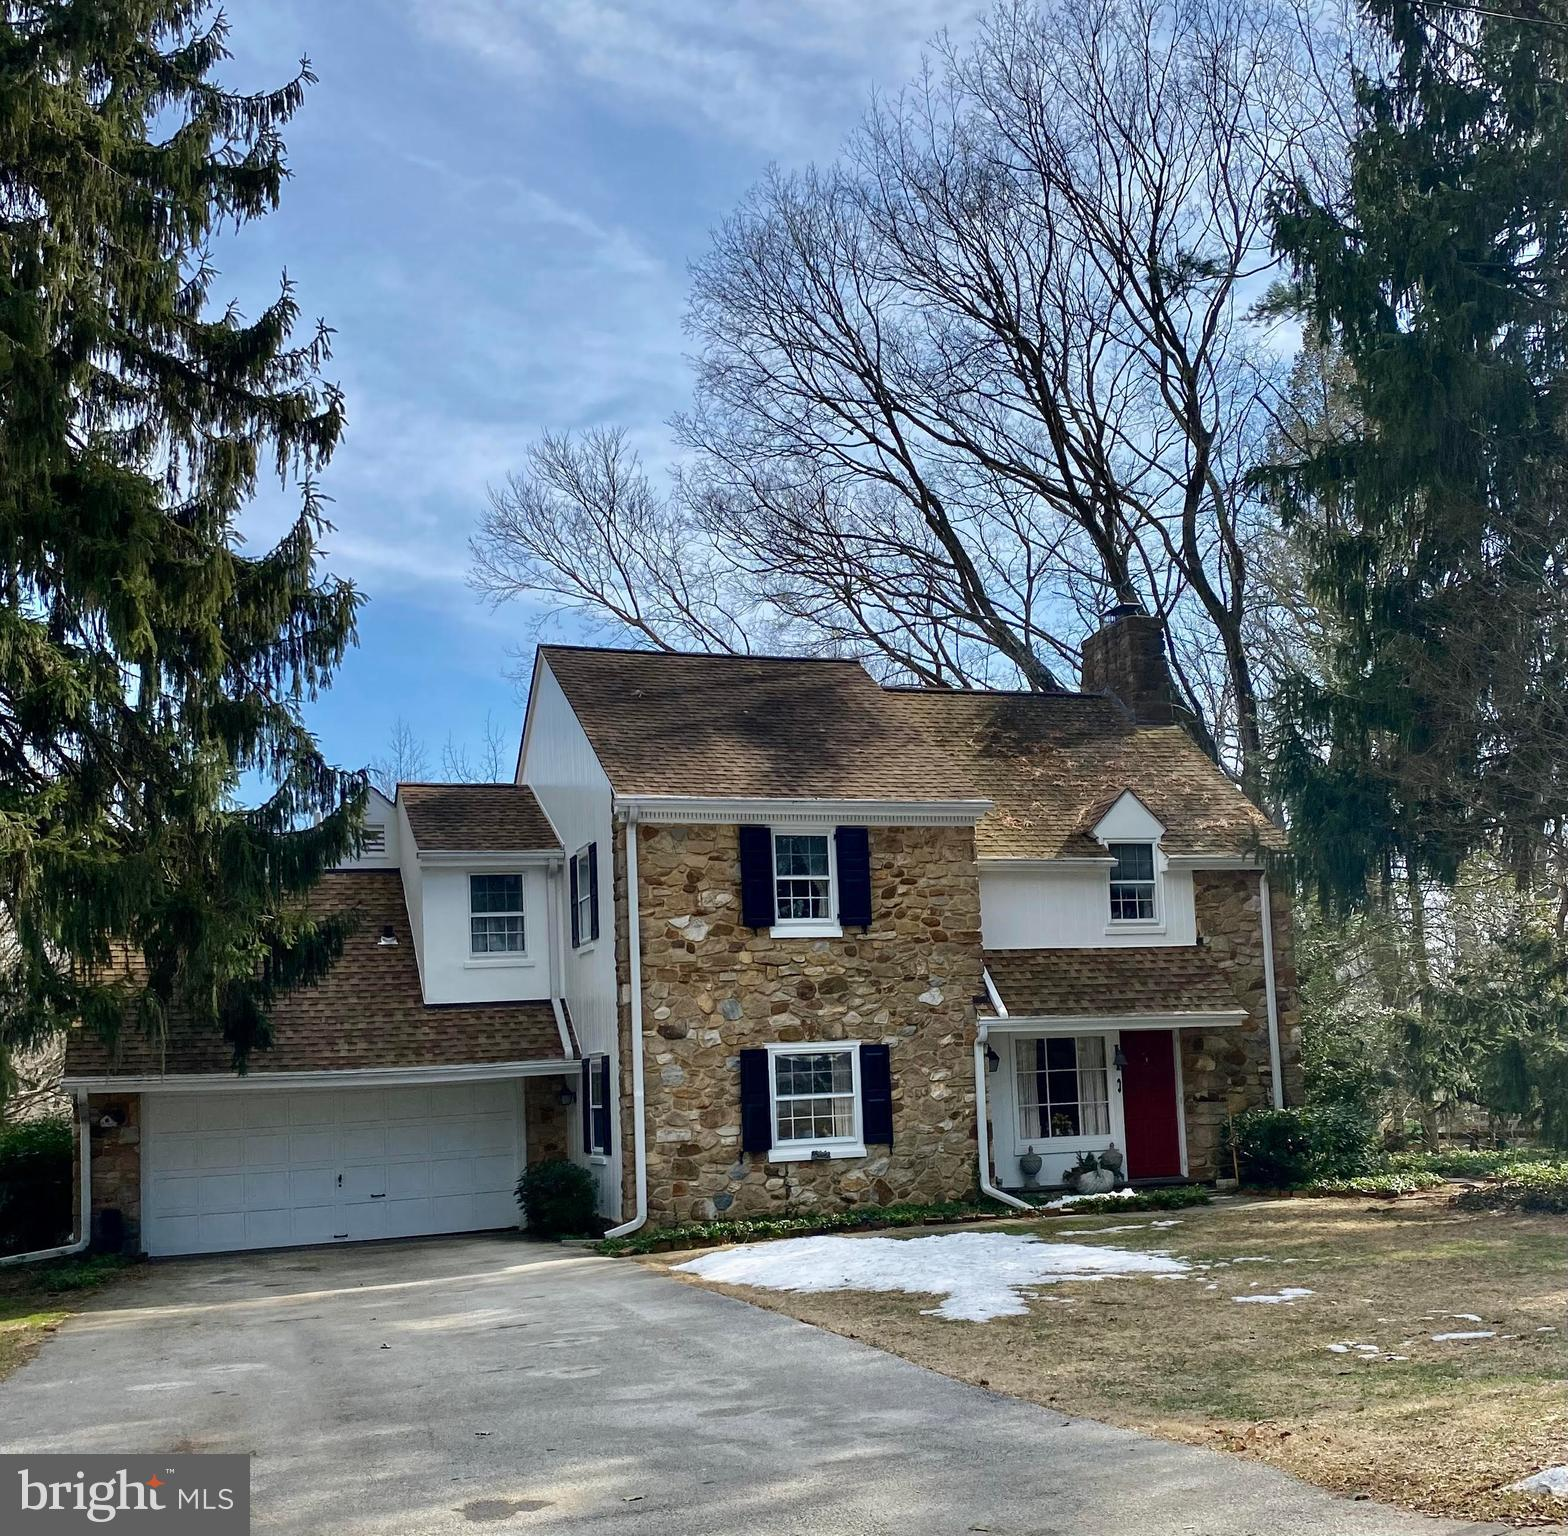 This charming stone colonial in award winning Radnor Township School District is waiting for the next owner to love it and the close knit neighborhood in which is located. Situated amid million dollar homes, the sky is the limit for making this gem your haven. Close to Villanova University, R5 and the 100 trolley, convenience abounds. The cozy formal living room has a wood burning fireplace and french doors to a private screened in porch. The Formal Dining room with deep window sills leads into the kitchen which leads into a bright family room with a picture window overlooking the private wooded lot. The private patio is ideal for outdoor dining. This is a 3/4 bedroom cottage with three full baths and one half bath. The landscaping has been lovingly maintained for privacy and the enjoyment of nature.